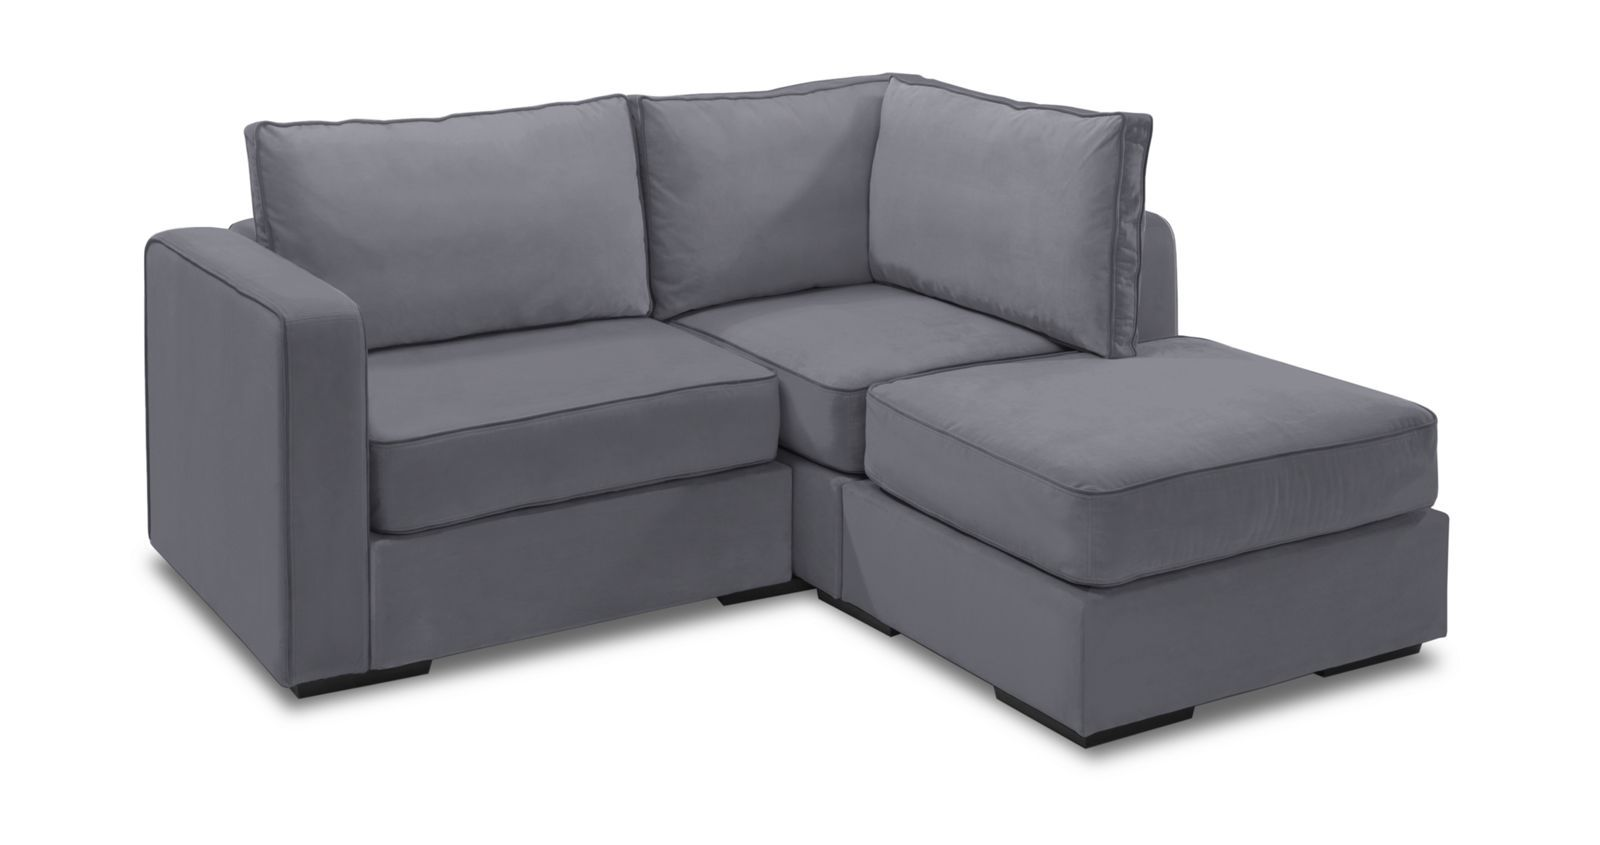 Phenomenal Chaise Sectional Loveseat 3 Seats 4 Sides In 2019 Ibusinesslaw Wood Chair Design Ideas Ibusinesslaworg